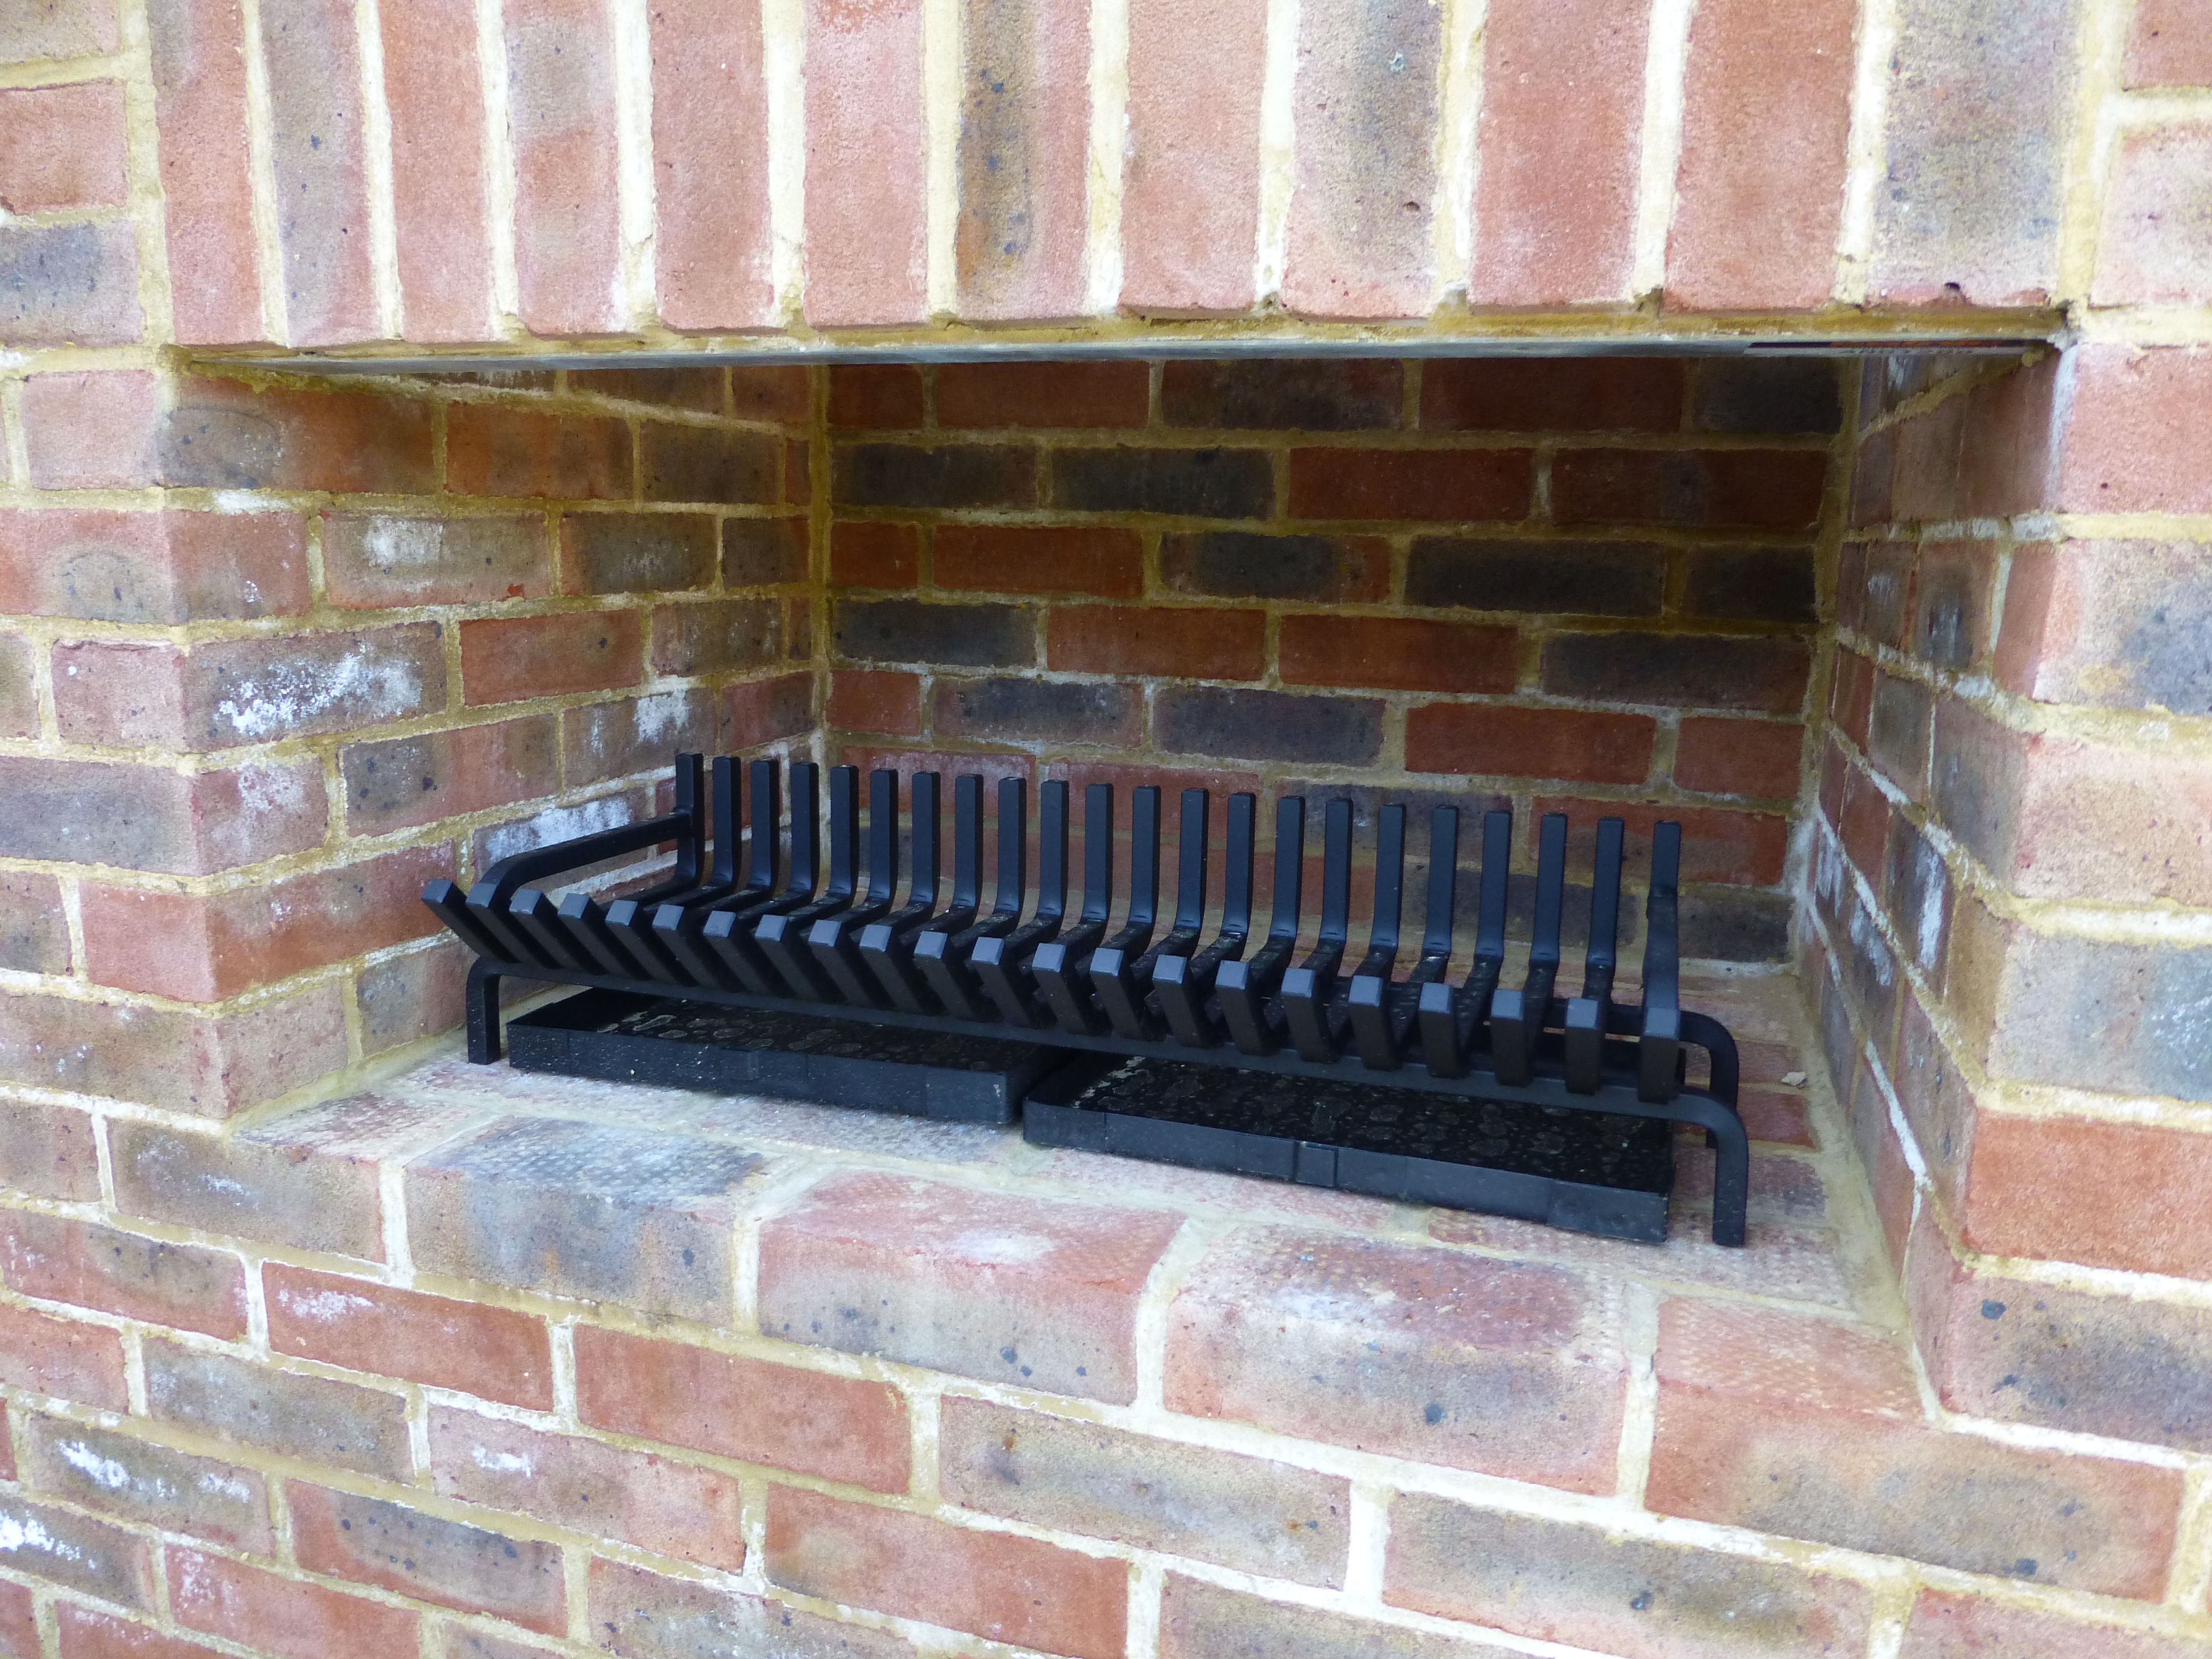 Range Additions Fire Baskets Fire Grates Fire Pits